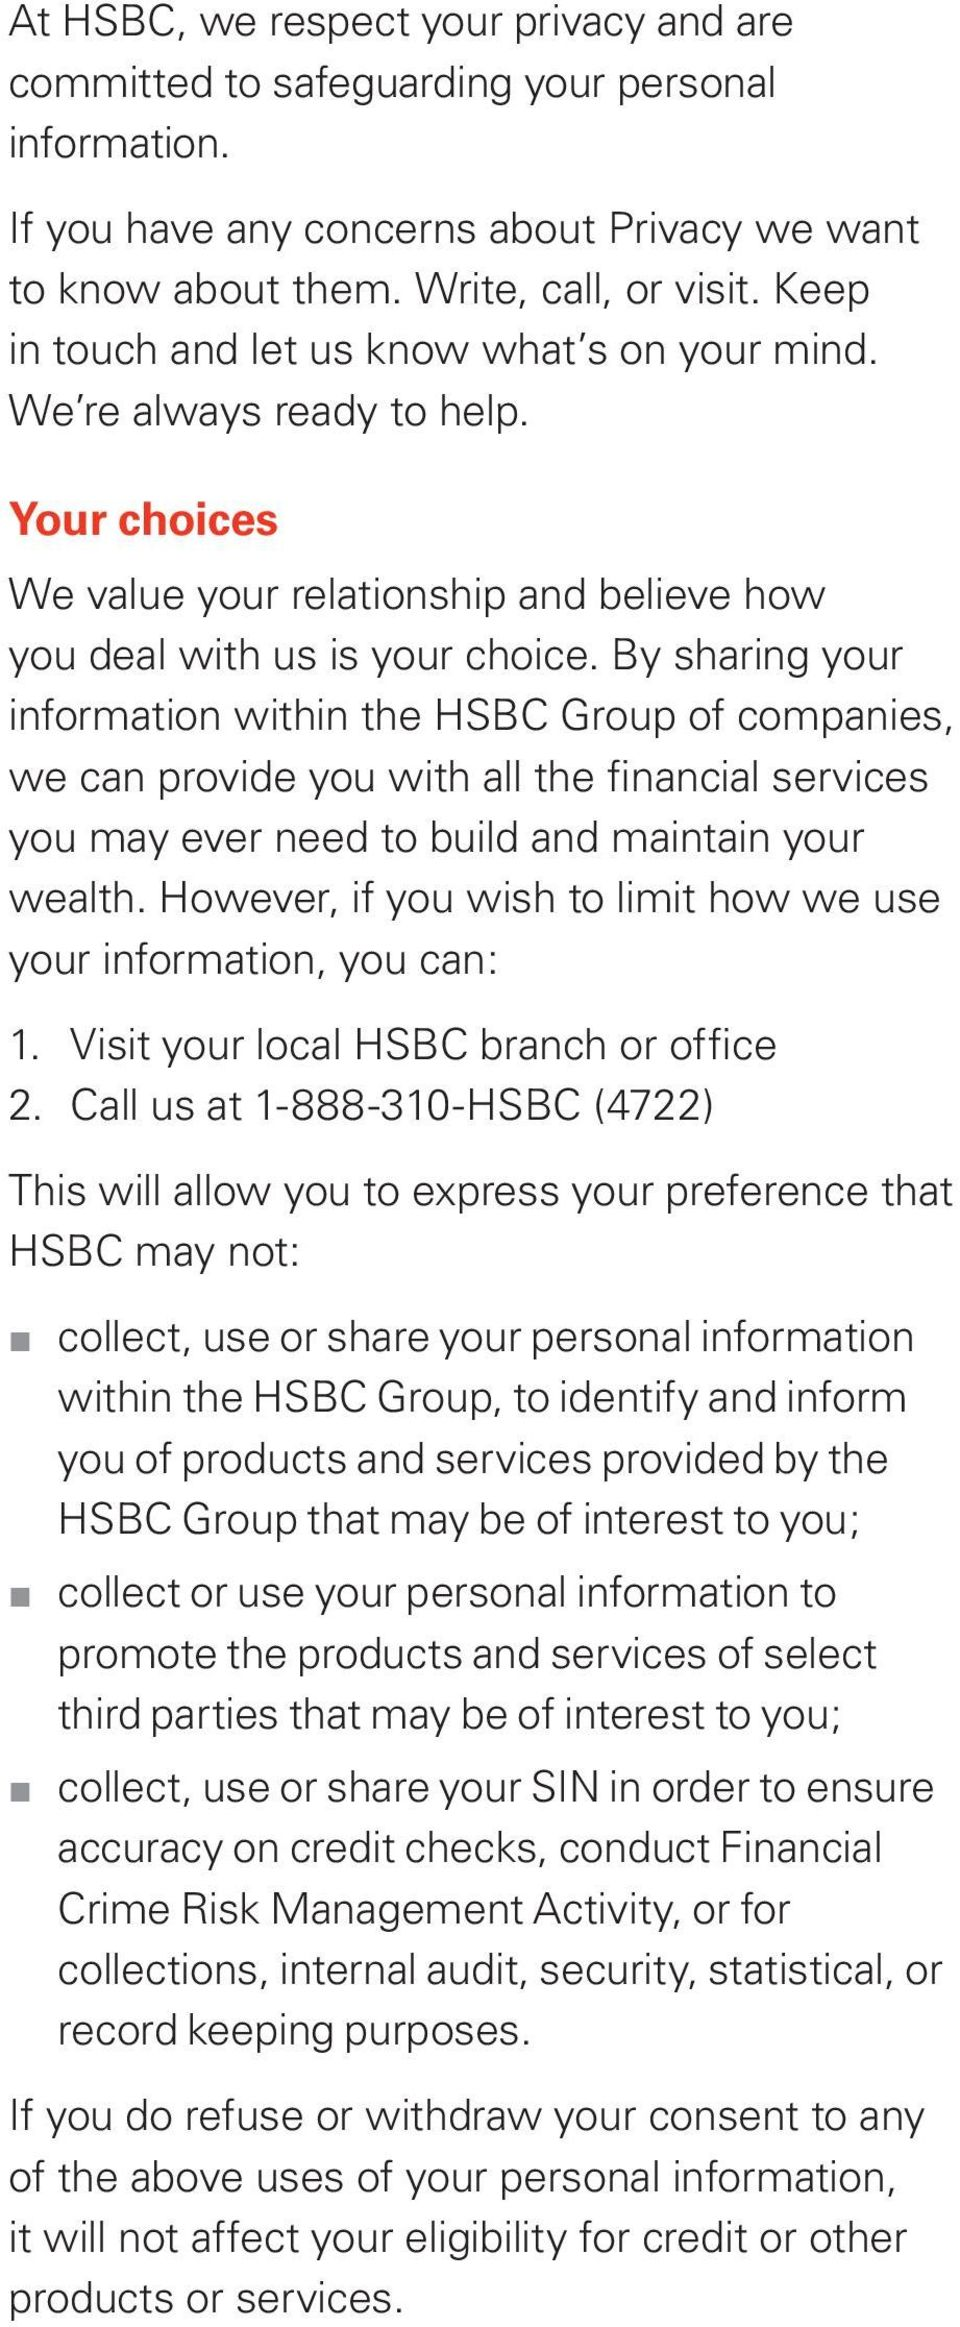 By sharing your information within the HSBC Group of companies, we can provide you with all the financial services you may ever need to build and maintain your wealth.